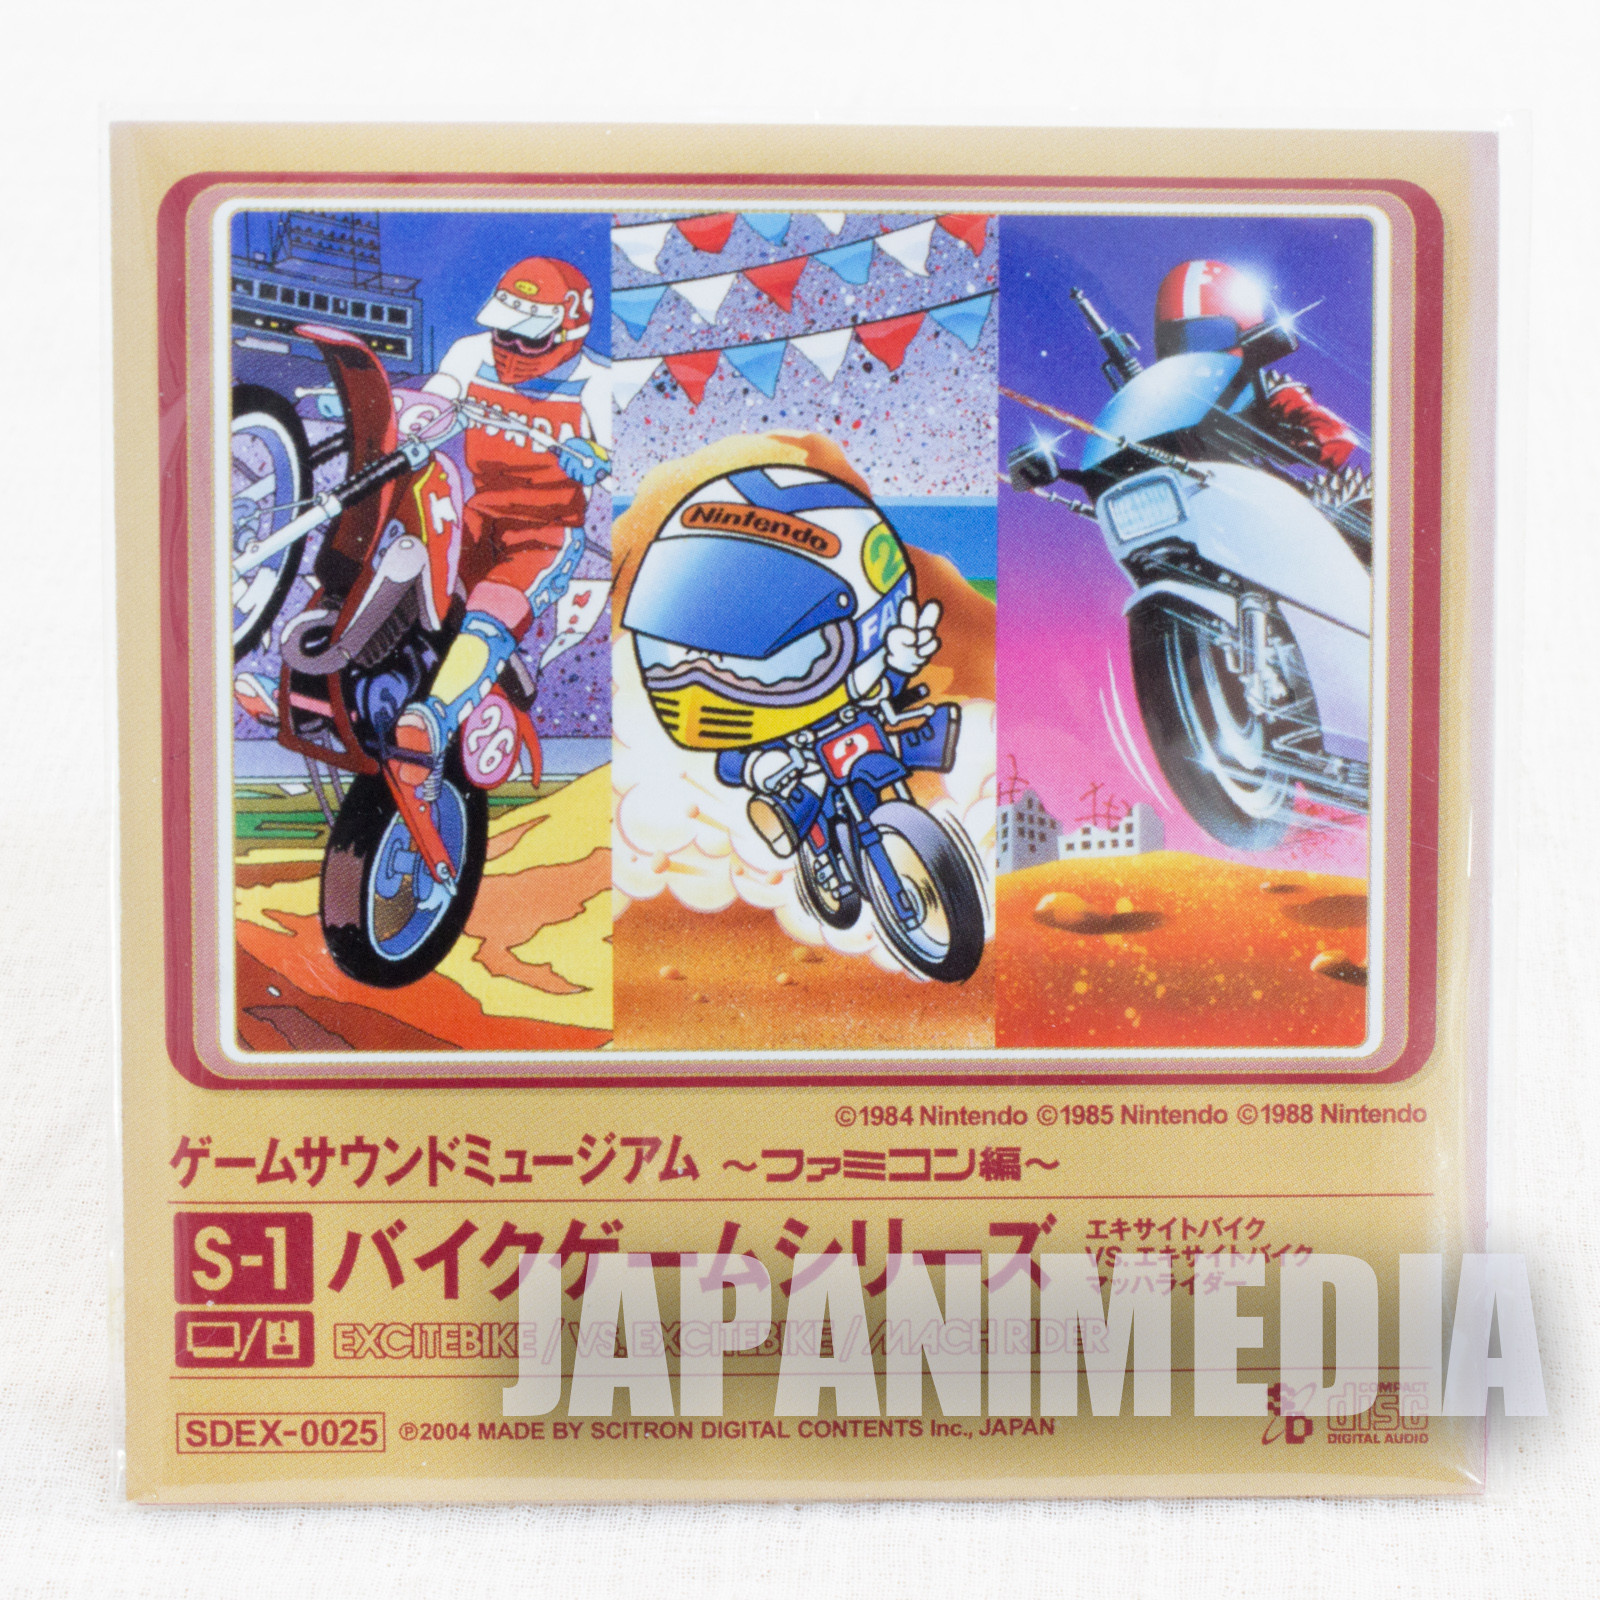 Excite Bike Mach Rider Game Sound Museum Nintendo Music 8cm CD JAPAN FAMICOM